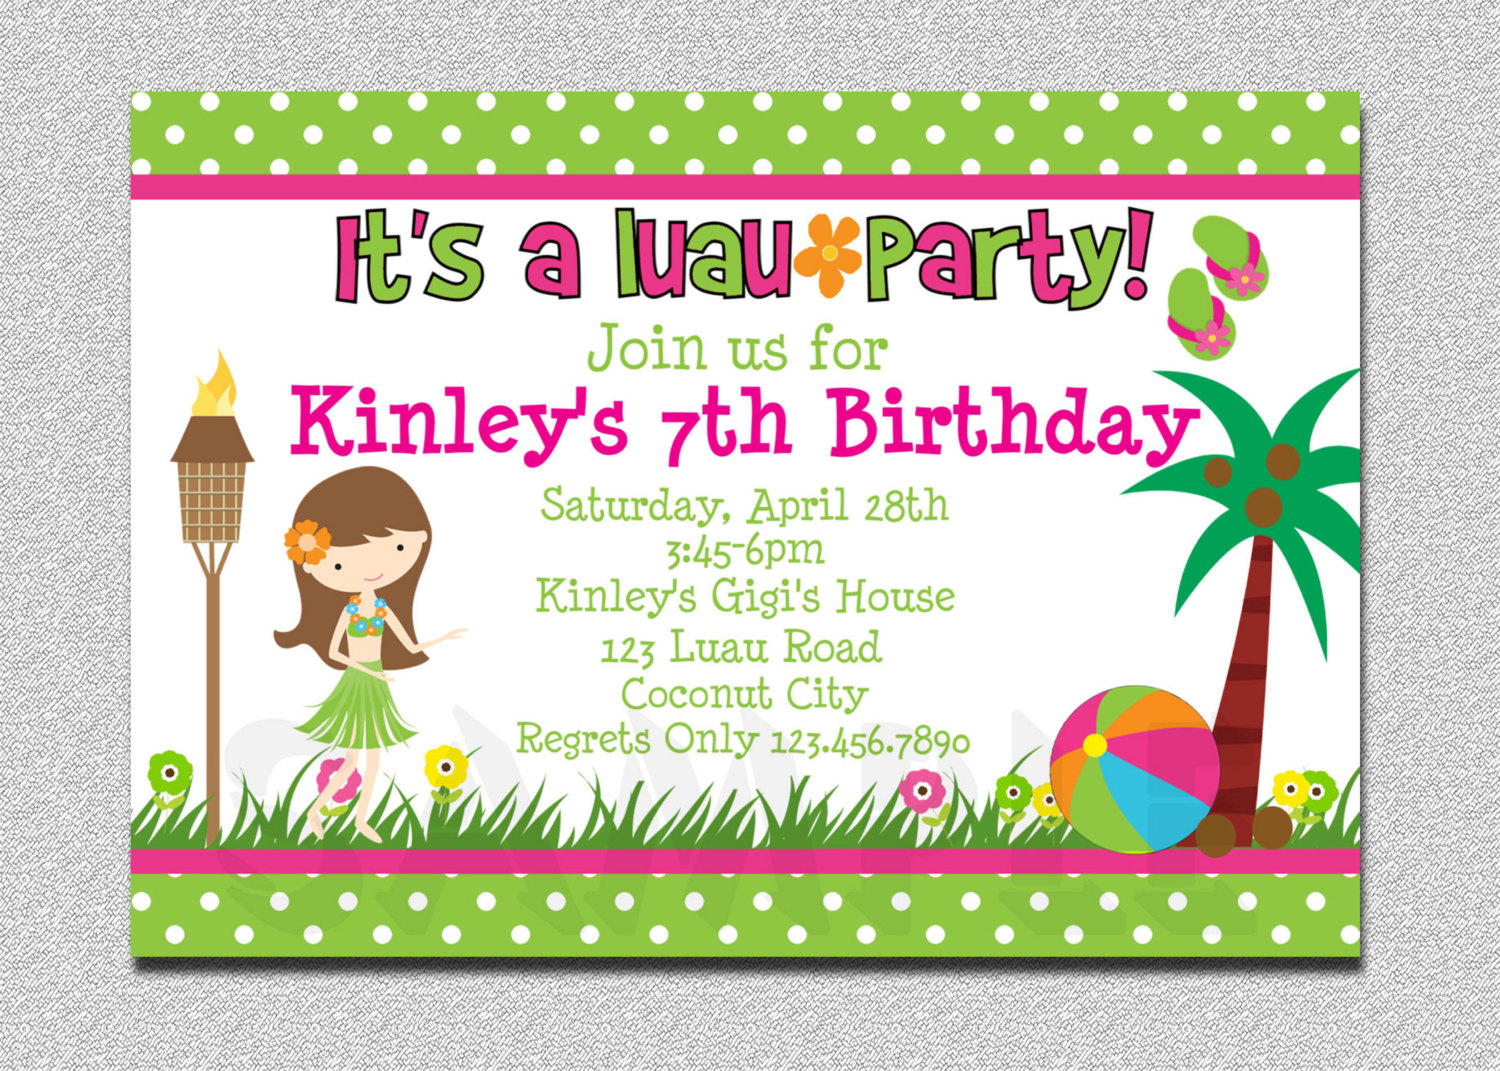 Luau Birthday Invitations Designs Birthday Party Invitations - Birthday invitation cards in french